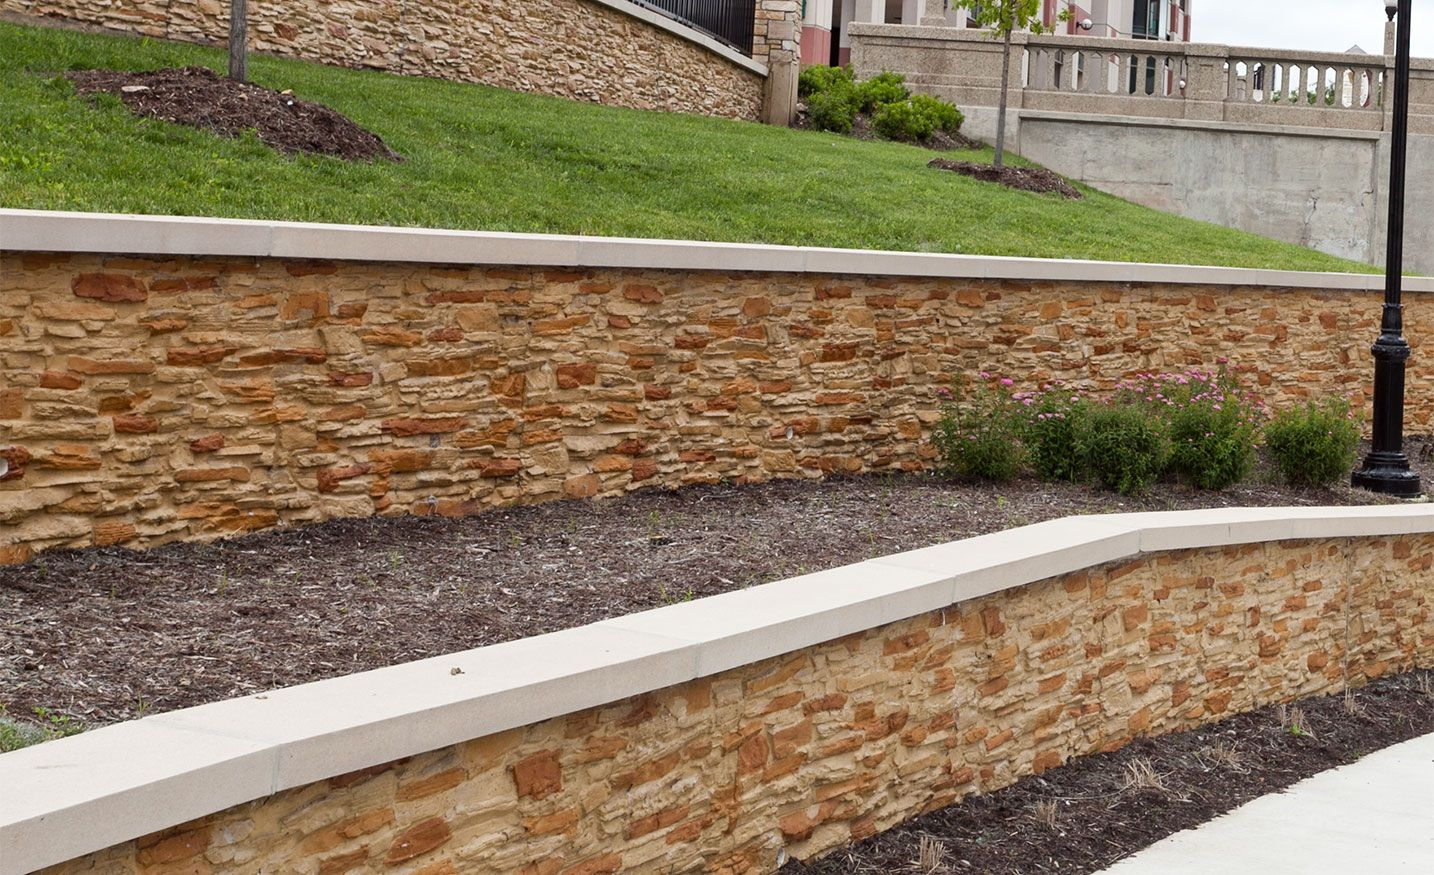 Decorative concrete block wall construction Cinder block retaining wall